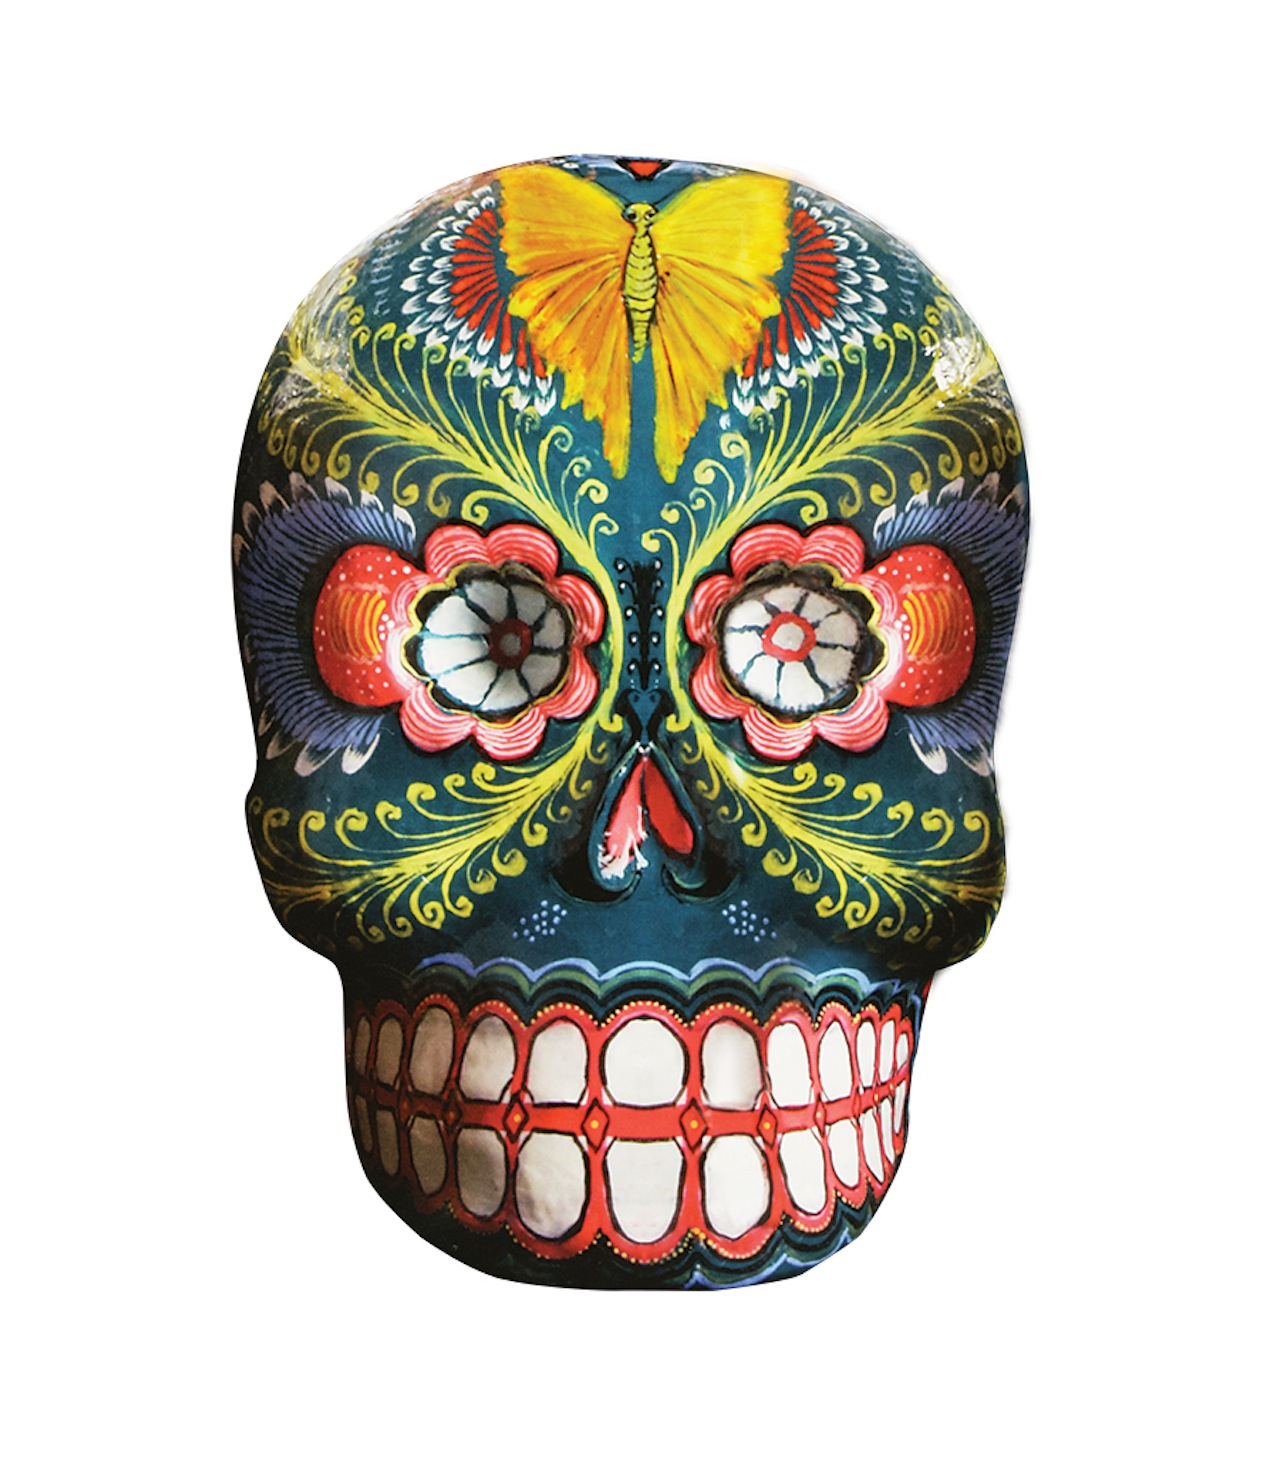 Leonardo Linares Vargas. Skull, 2001. Wire and papier-mâché, modeled and polychromed. Mexico City, Federal District, Mexico.  Image Courtesy of Fomento Cultural Banamex, A.C.